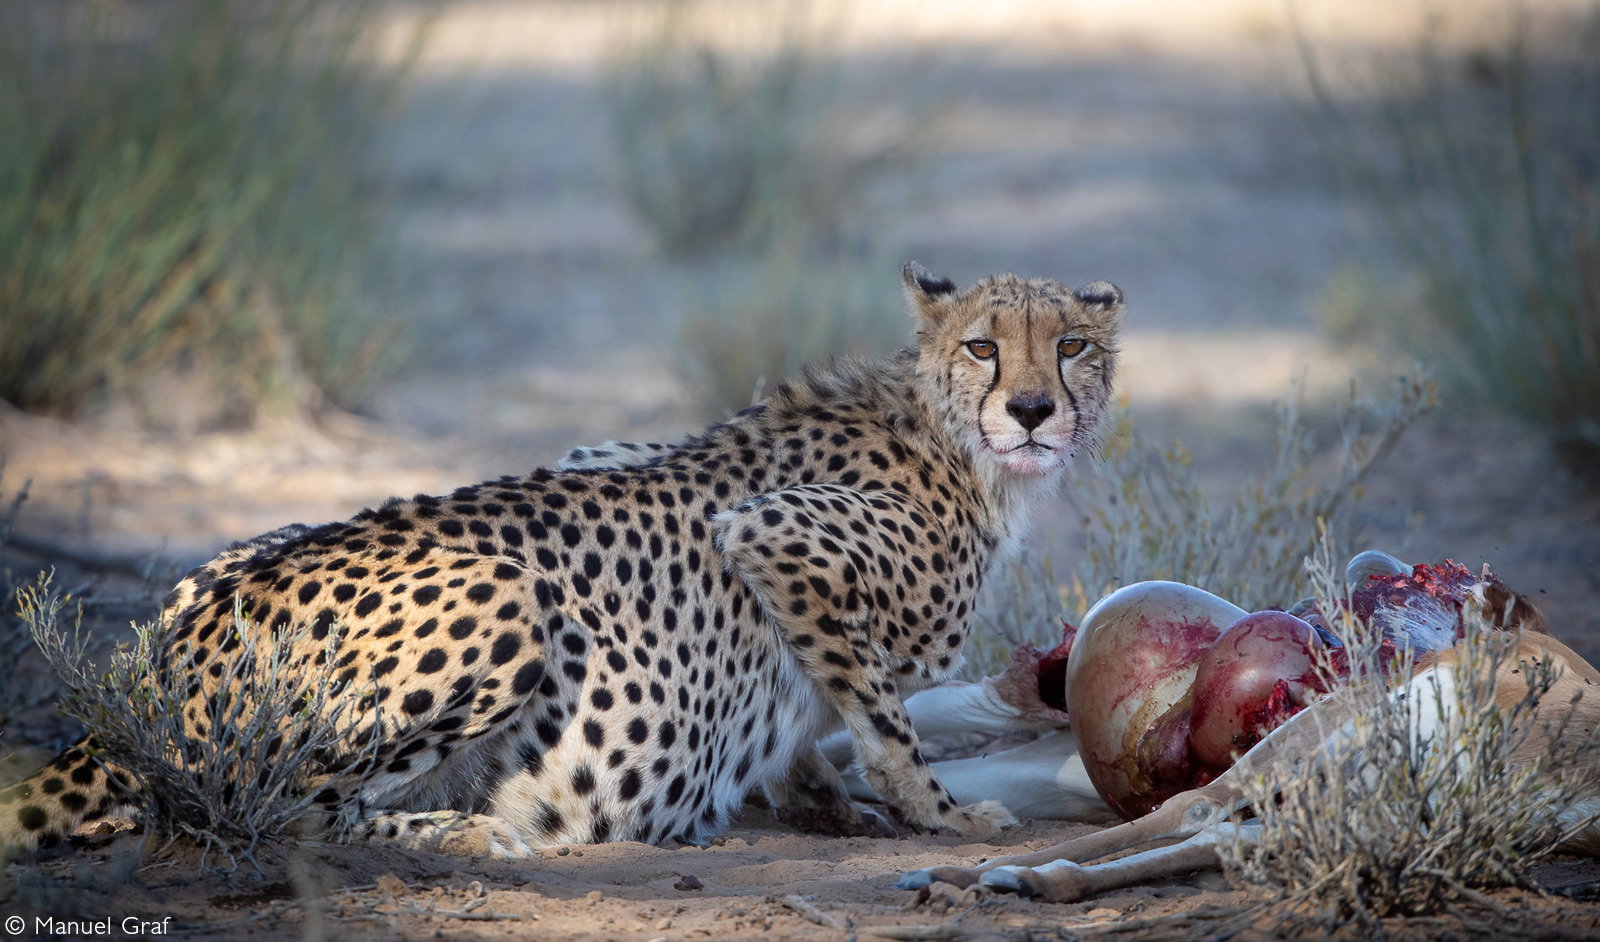 A cheetah with its kill close to Twee Rivieren Camp. Kgalagadi Transfrontier Park, South Africa © Manuel Graf